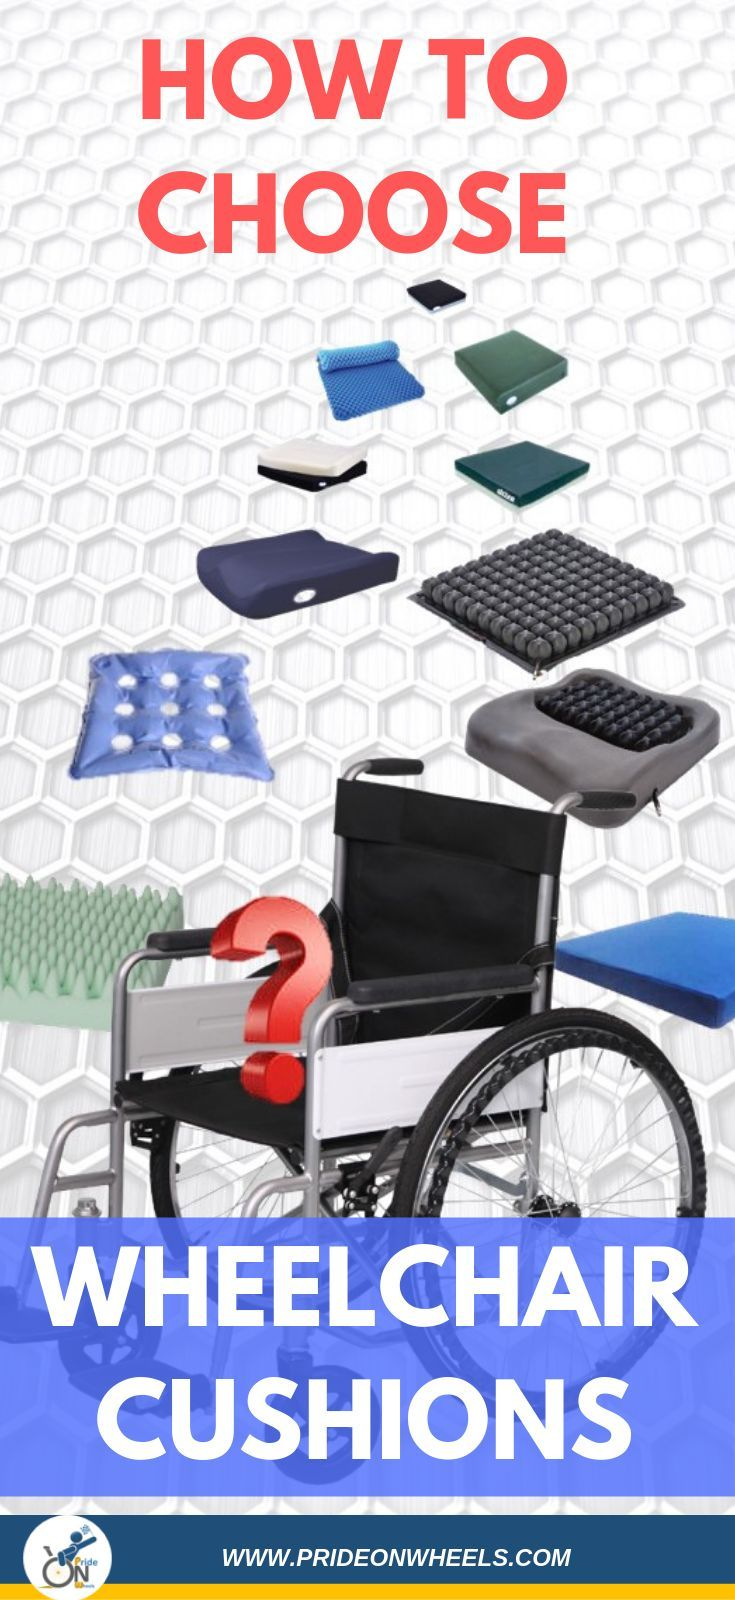 How to Choose A Wheelchair Cushion? in 2020 (With images